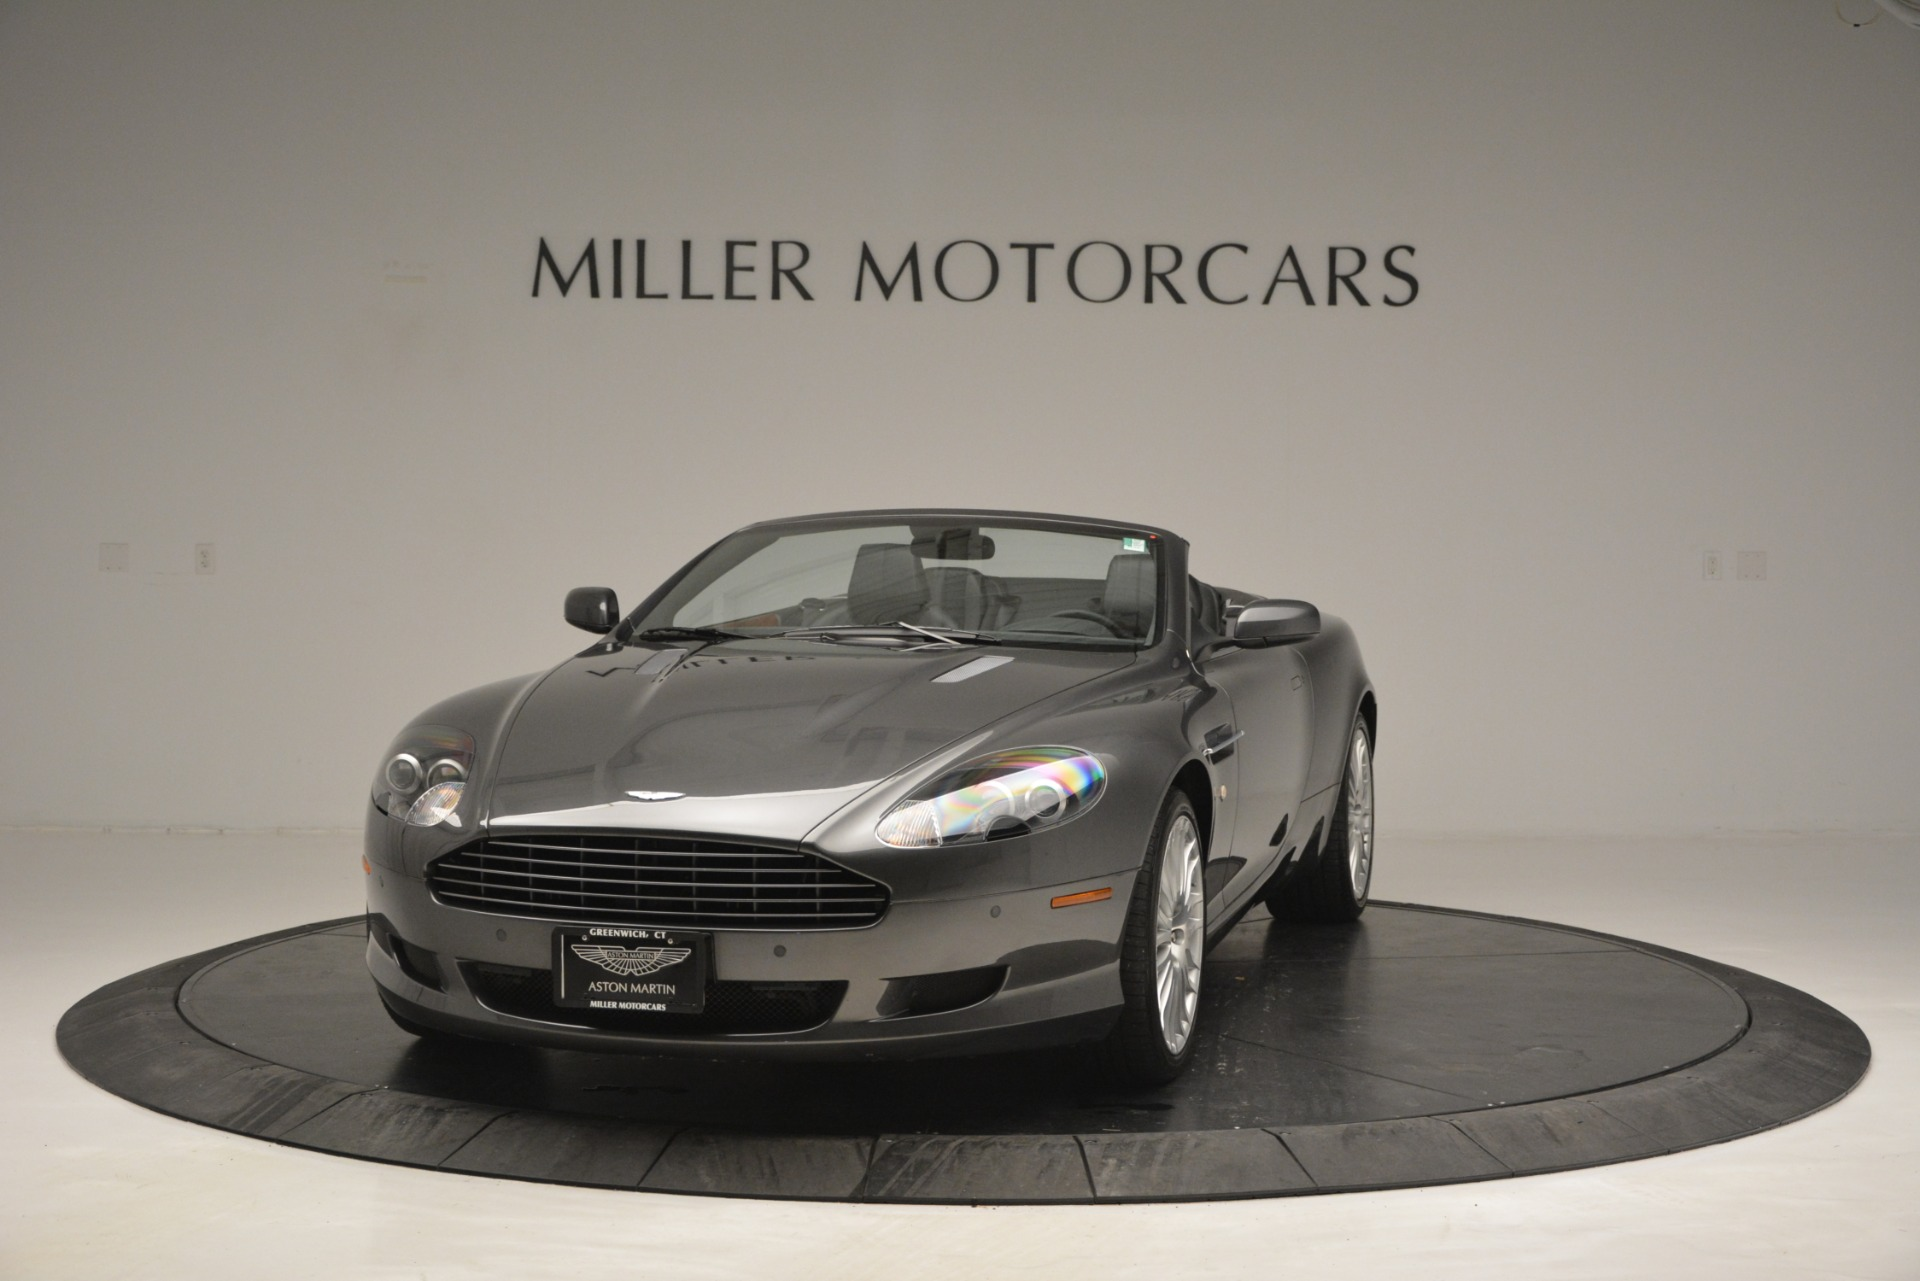 Pre Owned 2009 Aston Martin Db9 Convertible For Sale Miller Motorcars Stock 7468